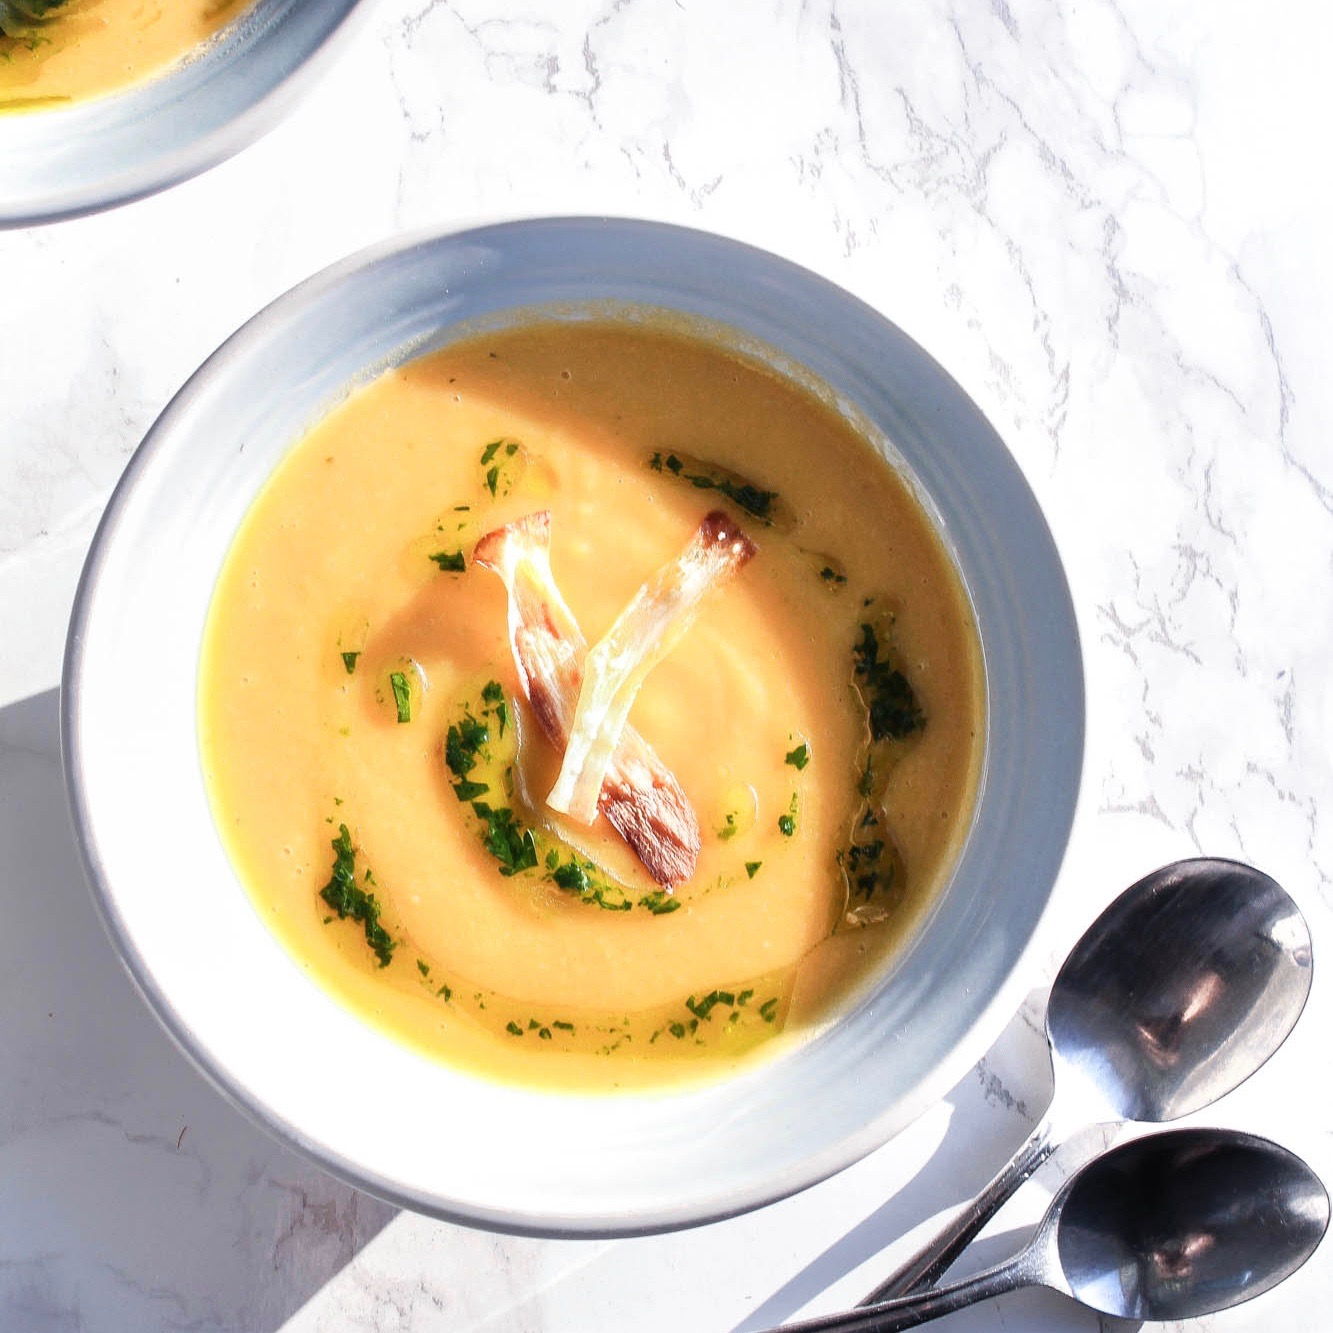 ROOT VEGETABLE SOUP (A GUIDE TO)